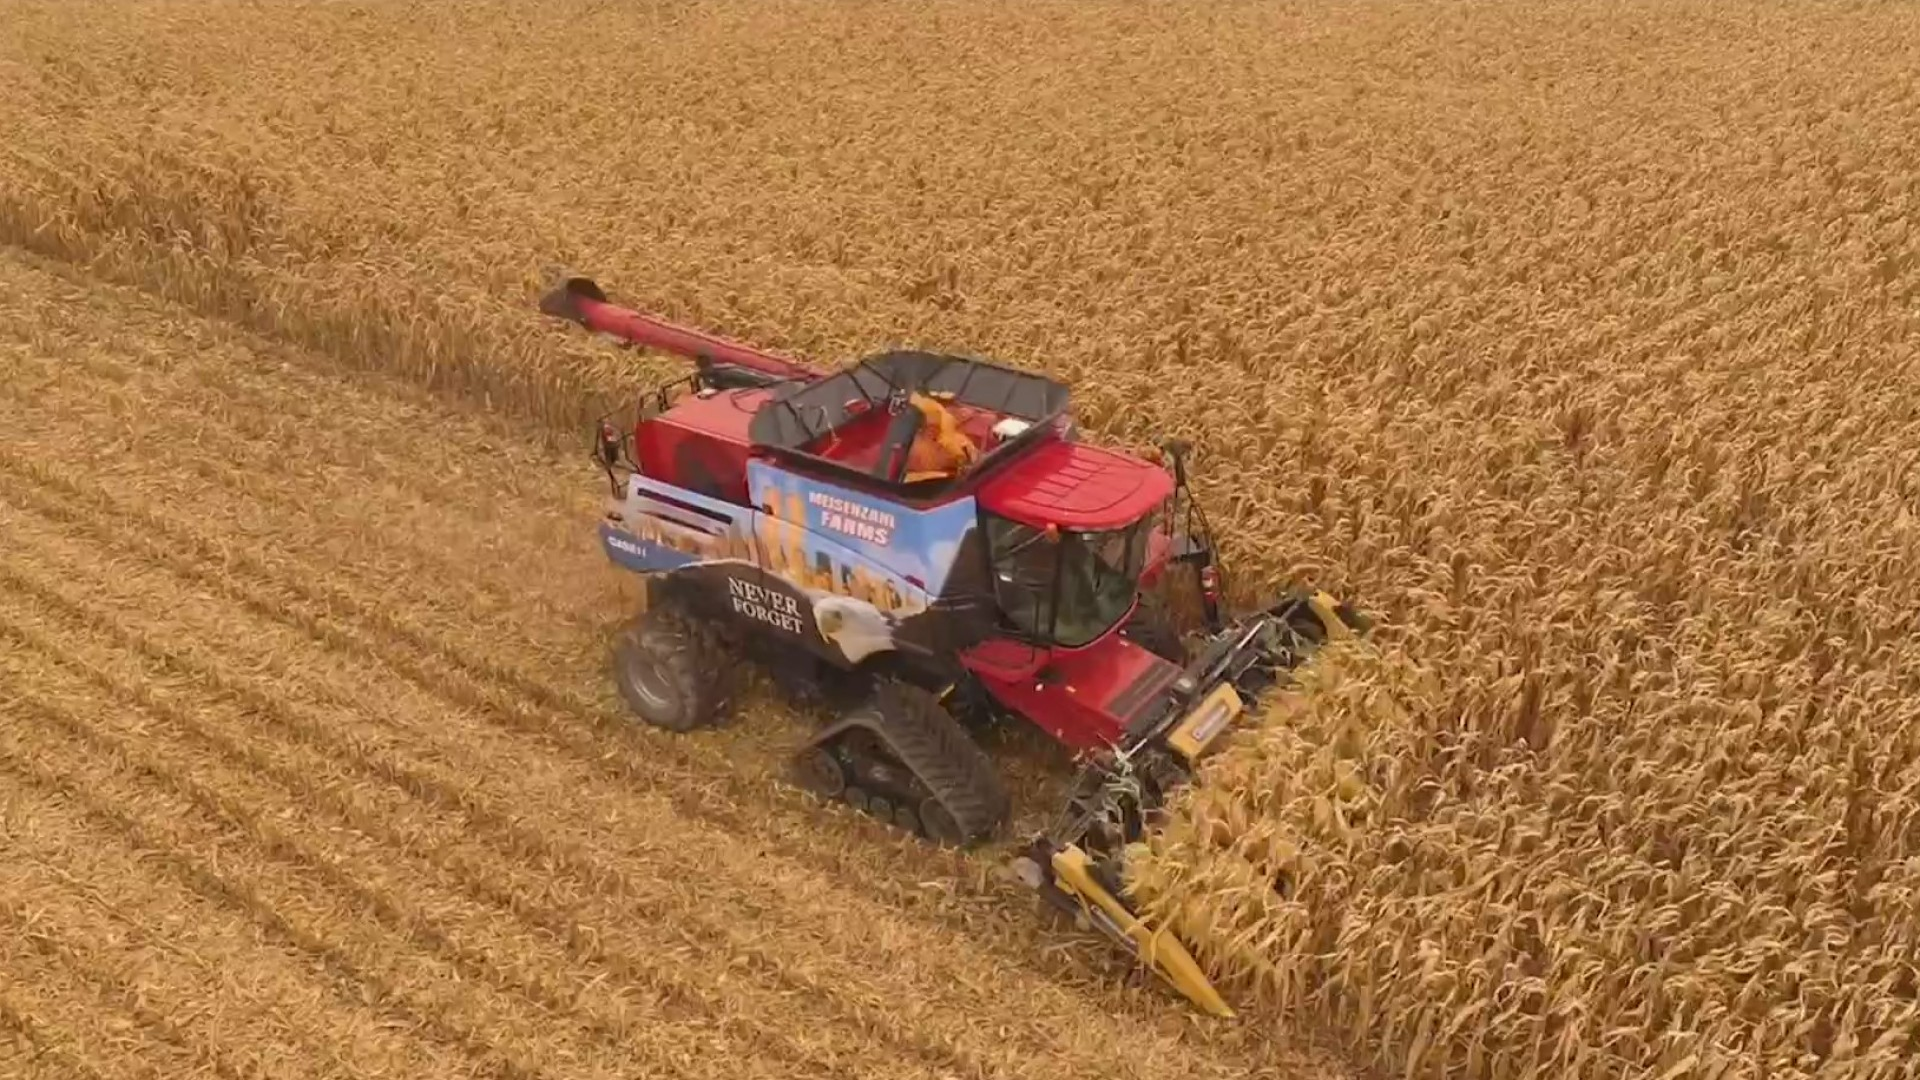 Farmers working non-stop to harvest before winter weather takes over